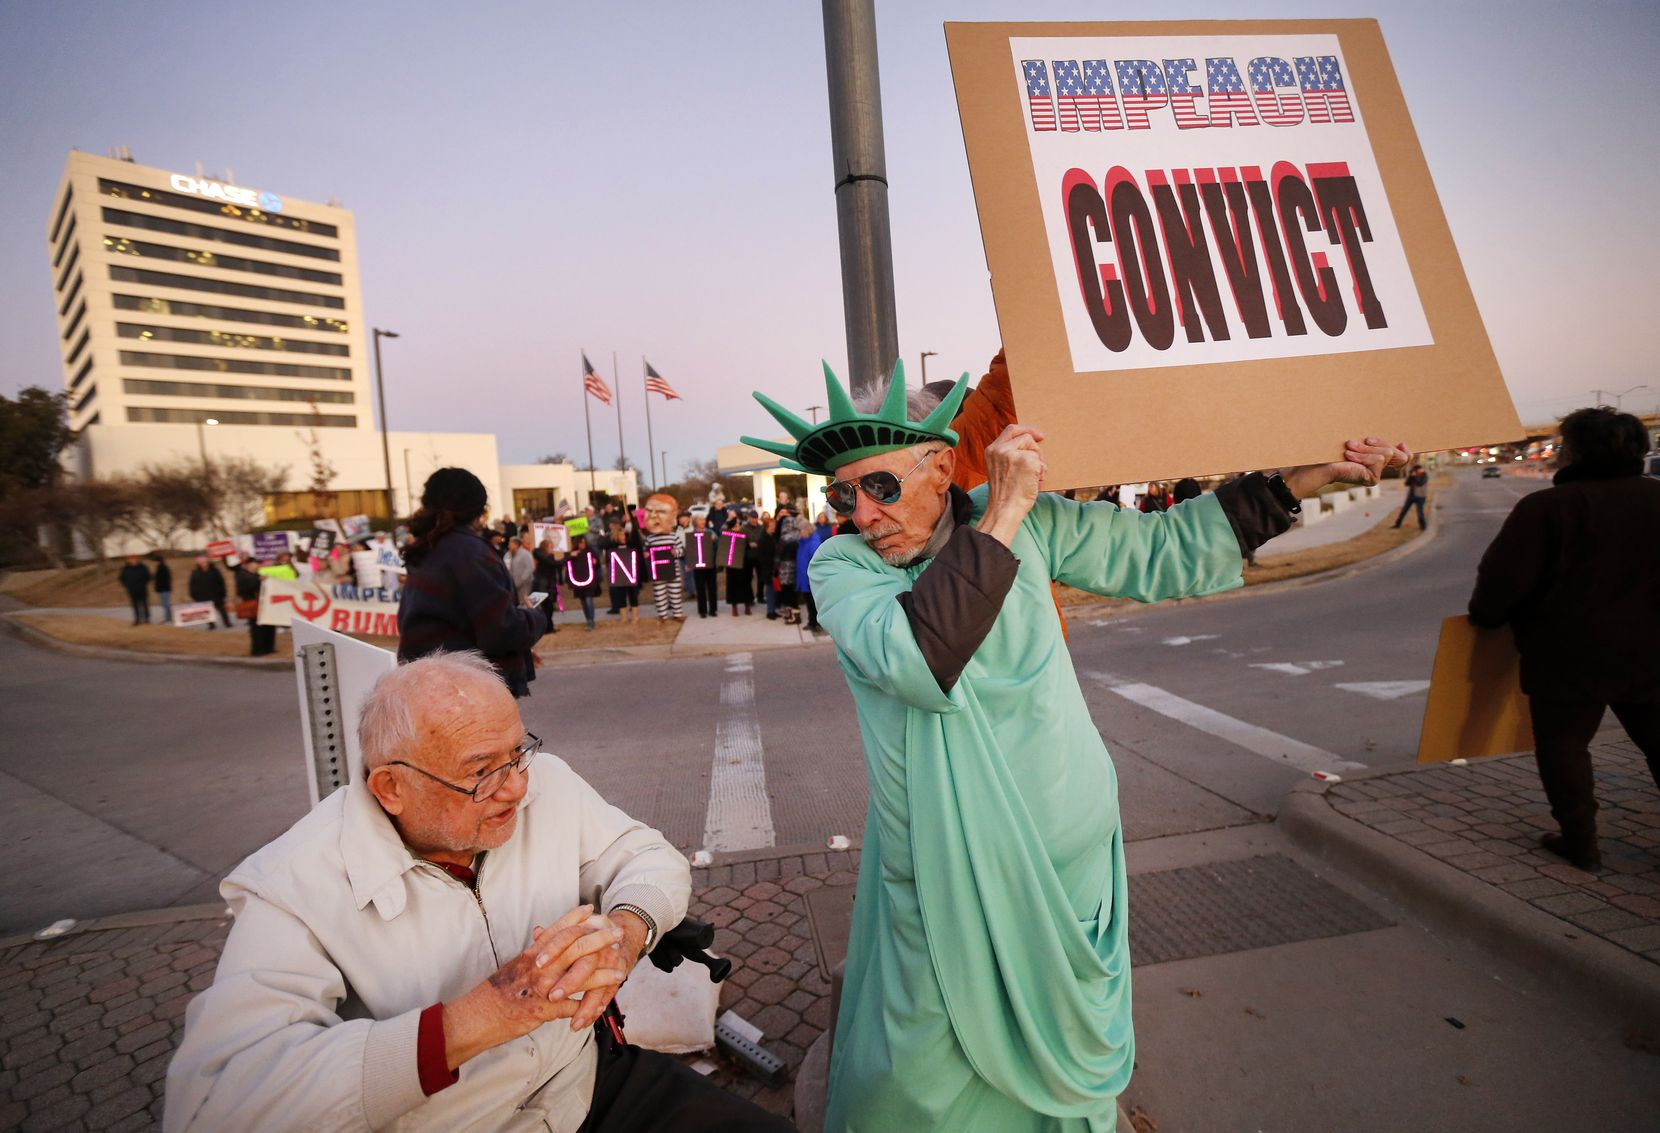 Supporters of U.S. Representative Colin Allred, including Ralph Secketa, 80, (left) and Zen Biasco, gathered outside his Richardson, Texas office at the intersection of Belt Line Rd and Central Expressway to show their support of President Donald Trump's impeachment, Tuesday evening, December 17, 2019.